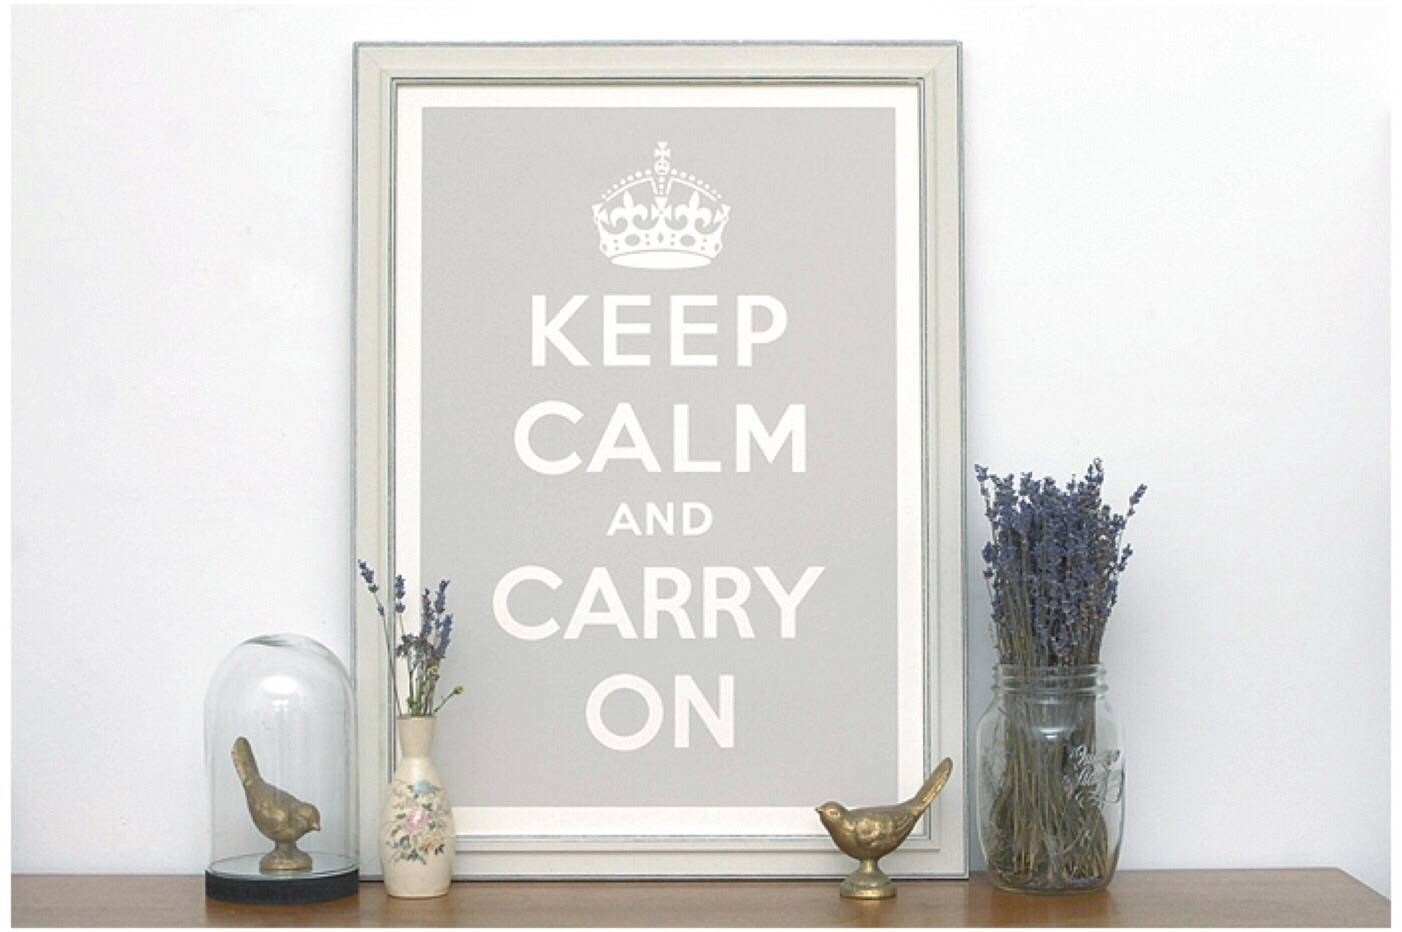 Keep Calm Wall Art Print Inside Newest Keep Calm And Carry On Wall Art (View 10 of 25)